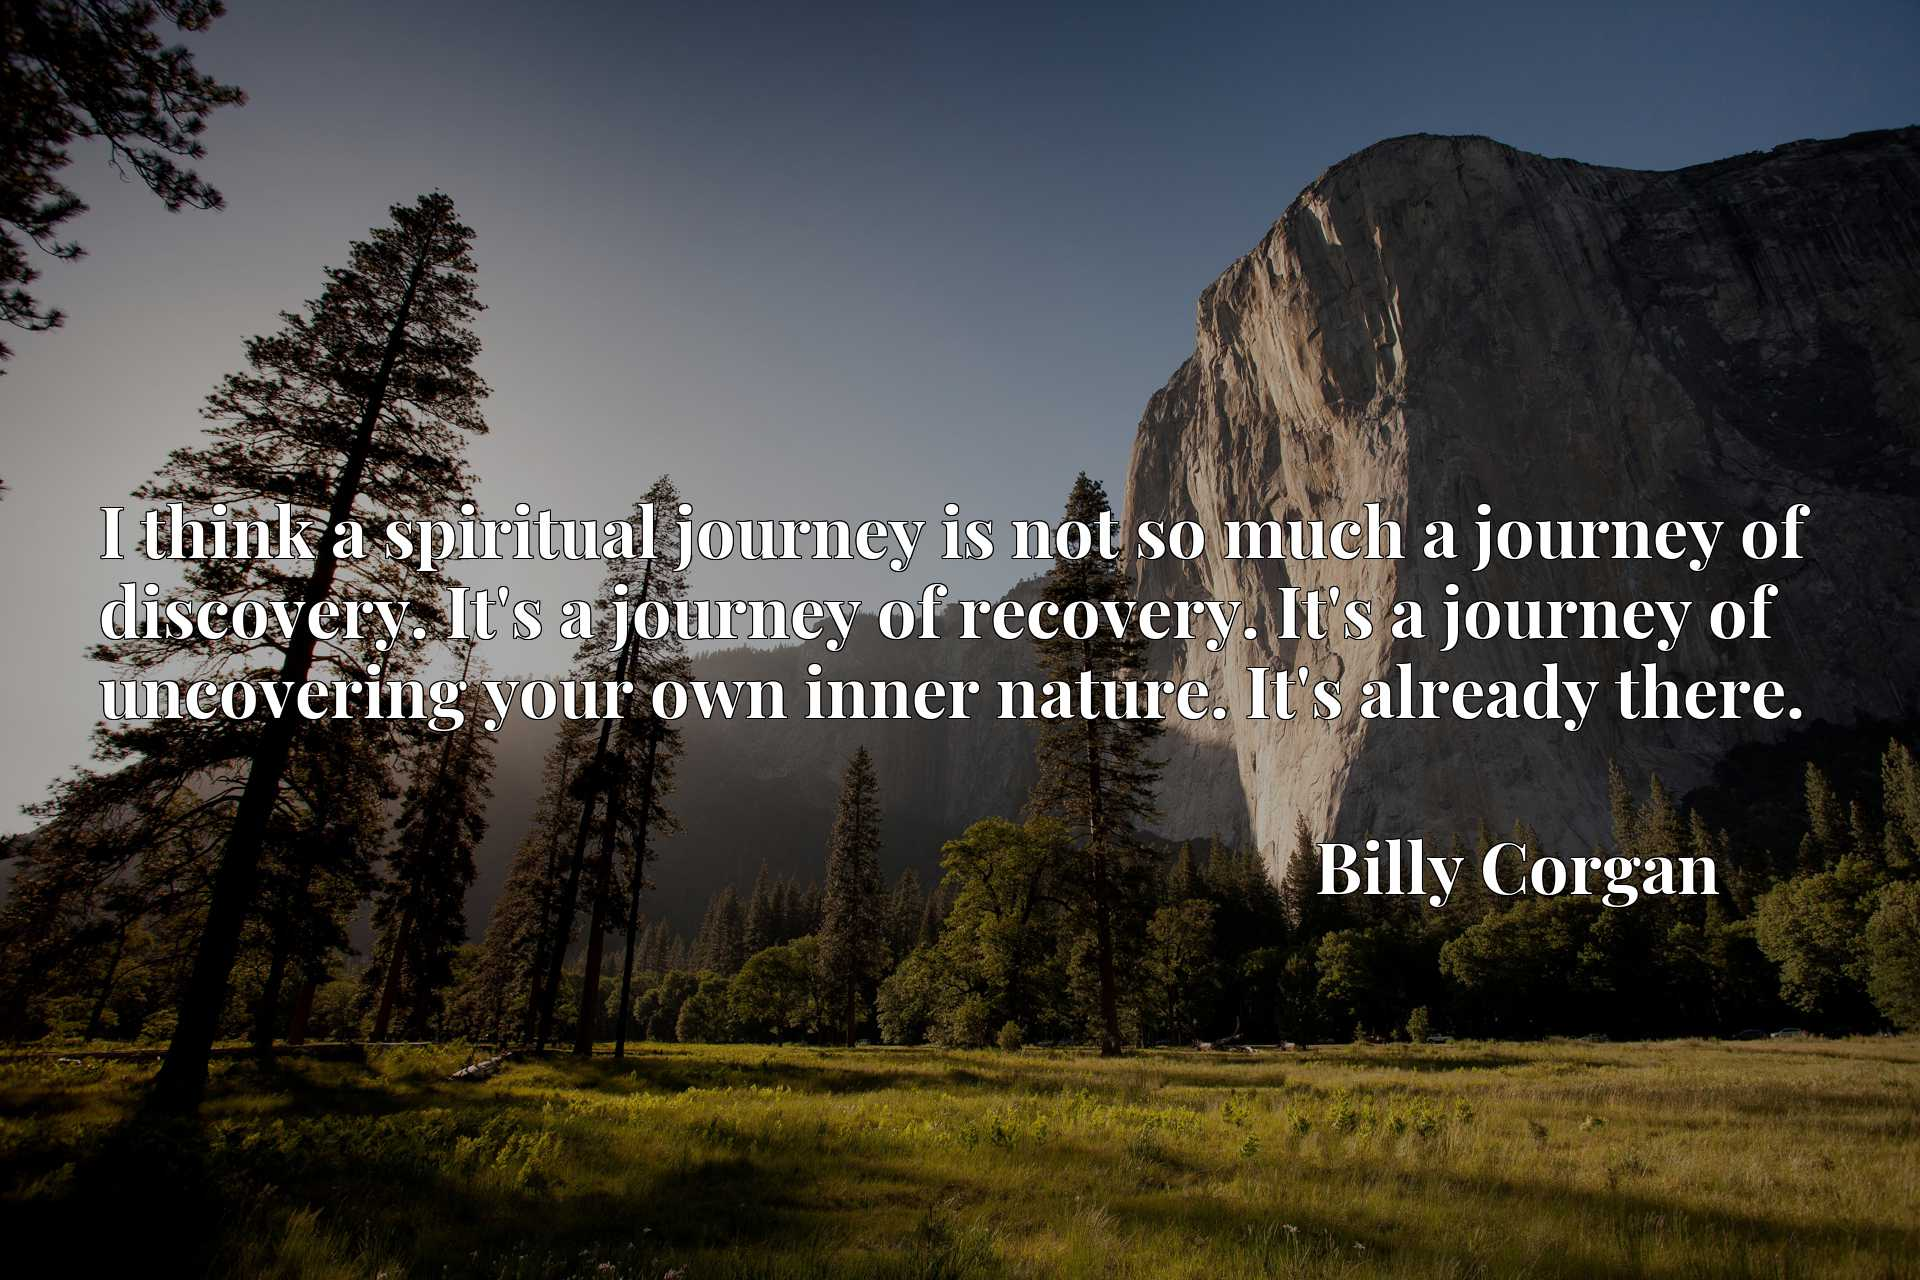 I think a spiritual journey is not so much a journey of discovery. It's a journey of recovery. It's a journey of uncovering your own inner nature. It's already there.